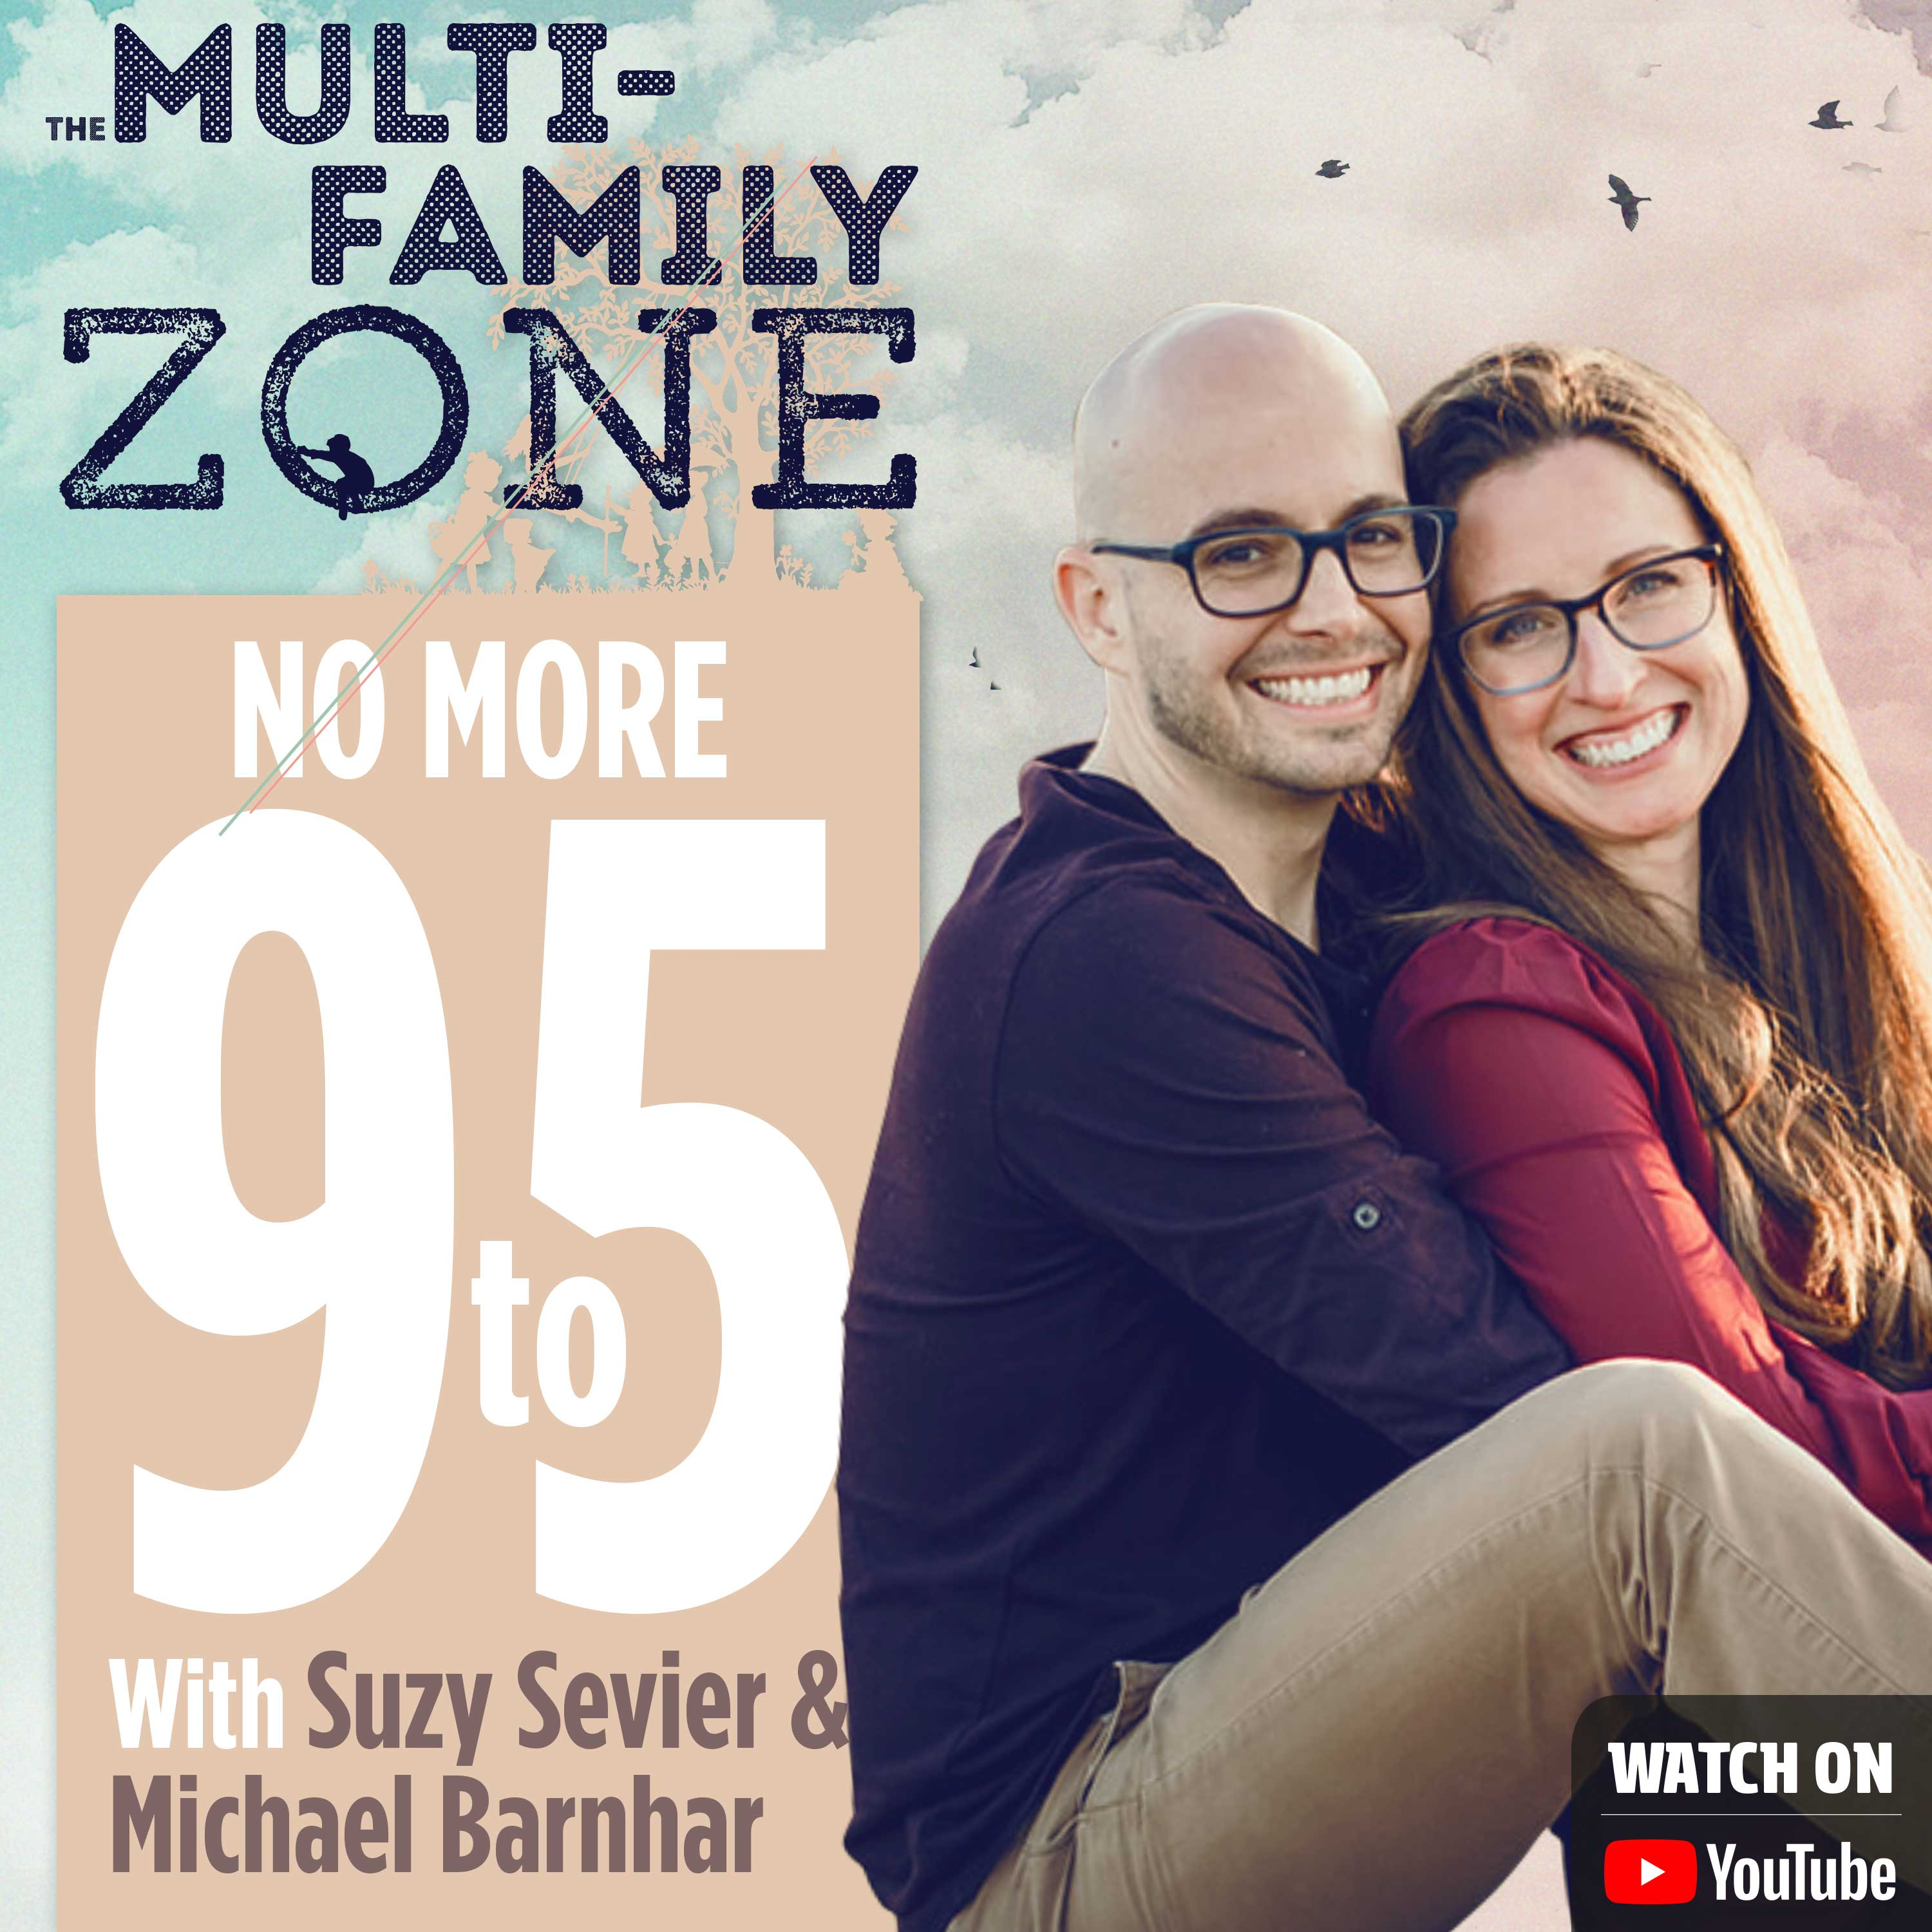 How To Get Rid of 9-5 W/Suzy Sevier and Michael Barnhart